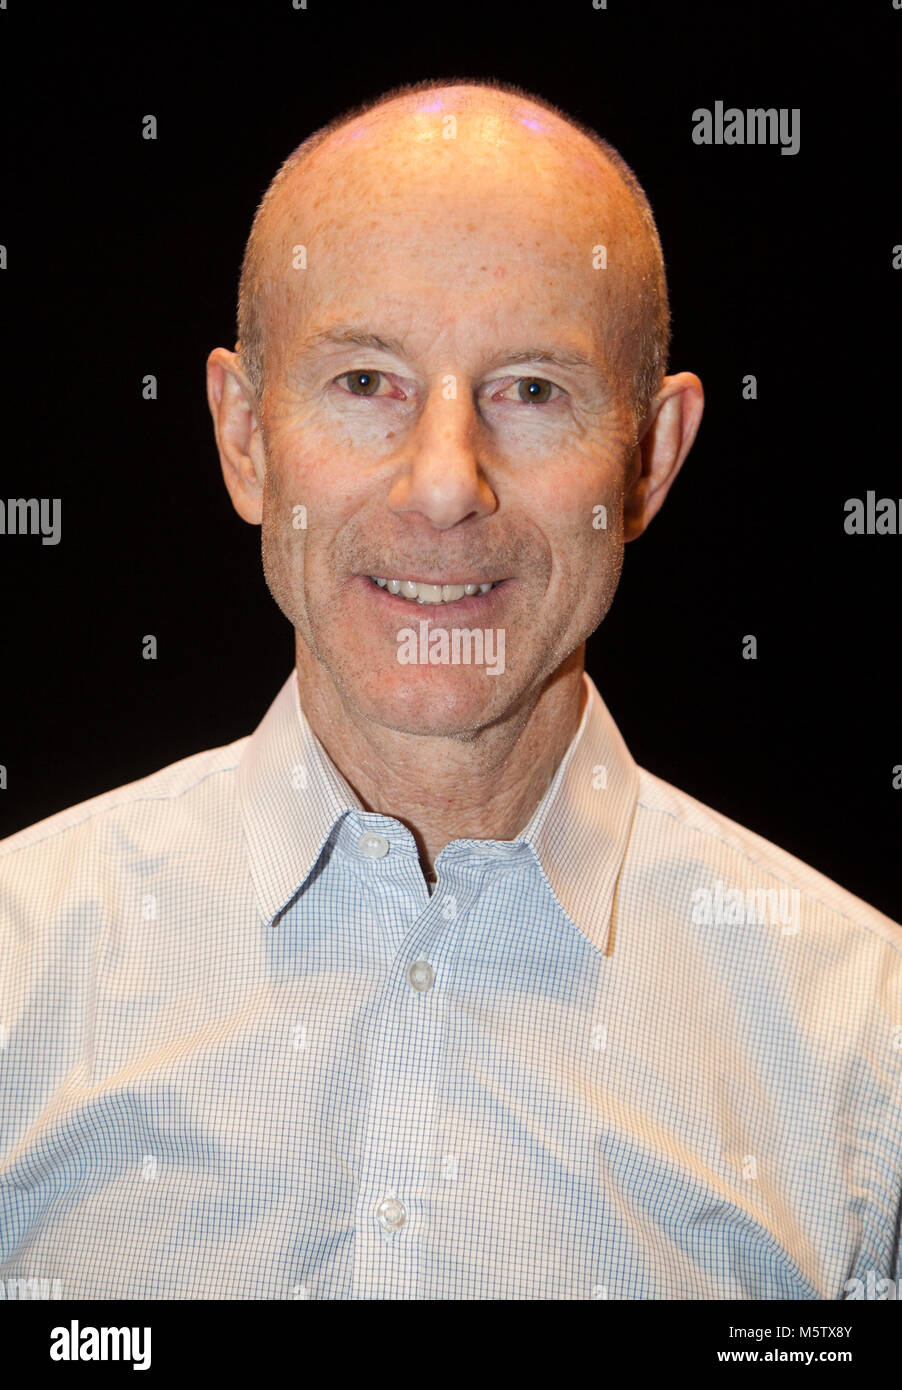 INGEMAR STENMARK former World Cup alpine ski racer from Sweden 2018 Olympic gold medalist and World cup Champion - Stock Image